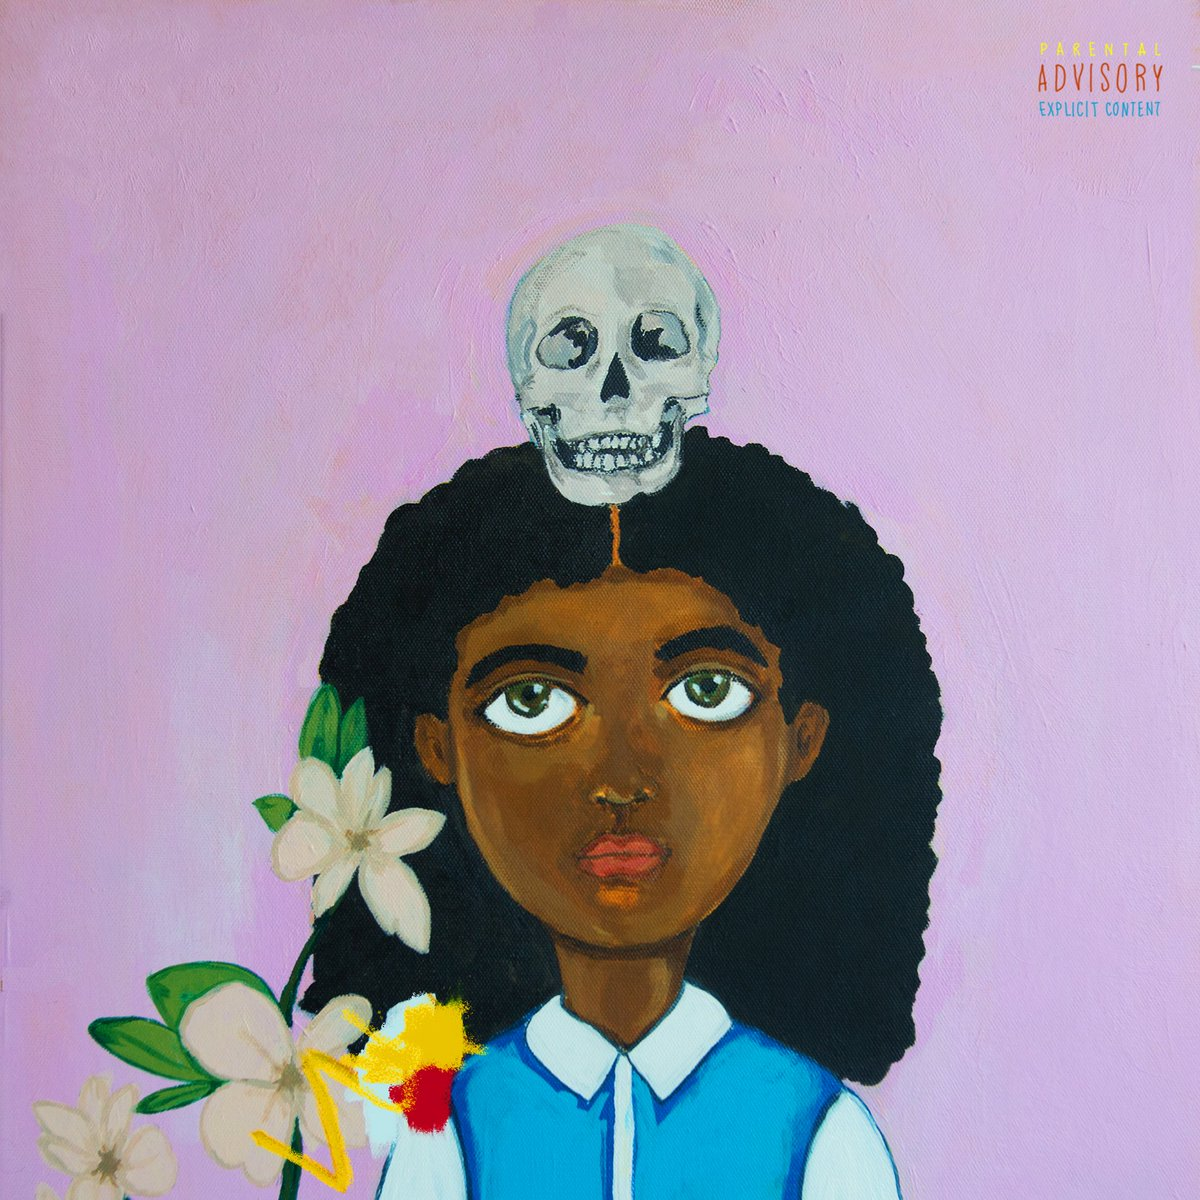 <strong> 50. Noname - Telefone </strong>